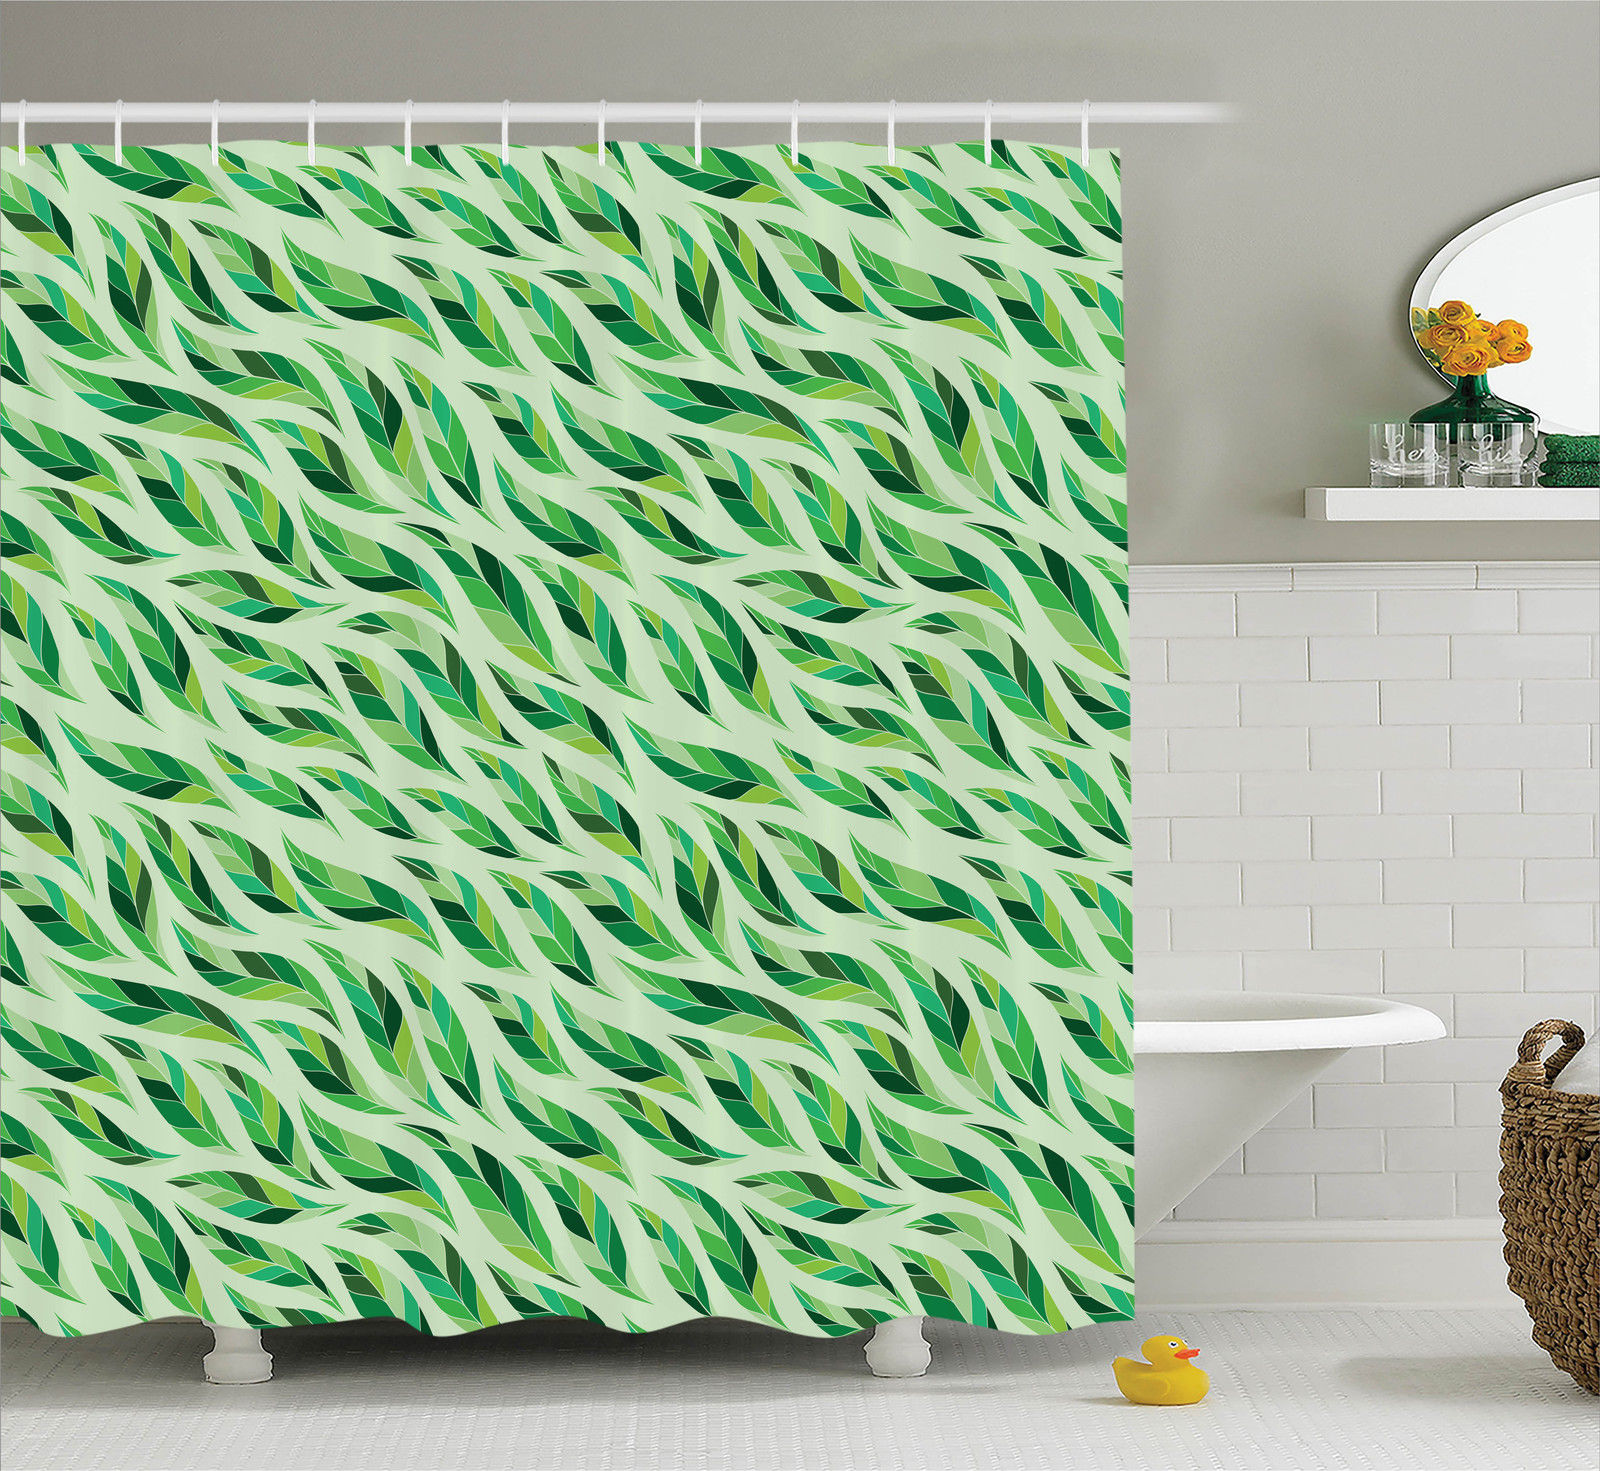 Leaves Decor  Ethnic Wavy Line Abstract Colorful Tea Leaves With Modern Illustration Patterns, Bathroom Accessories, 69W X 84L Inches Extra Long, By Ambesonne